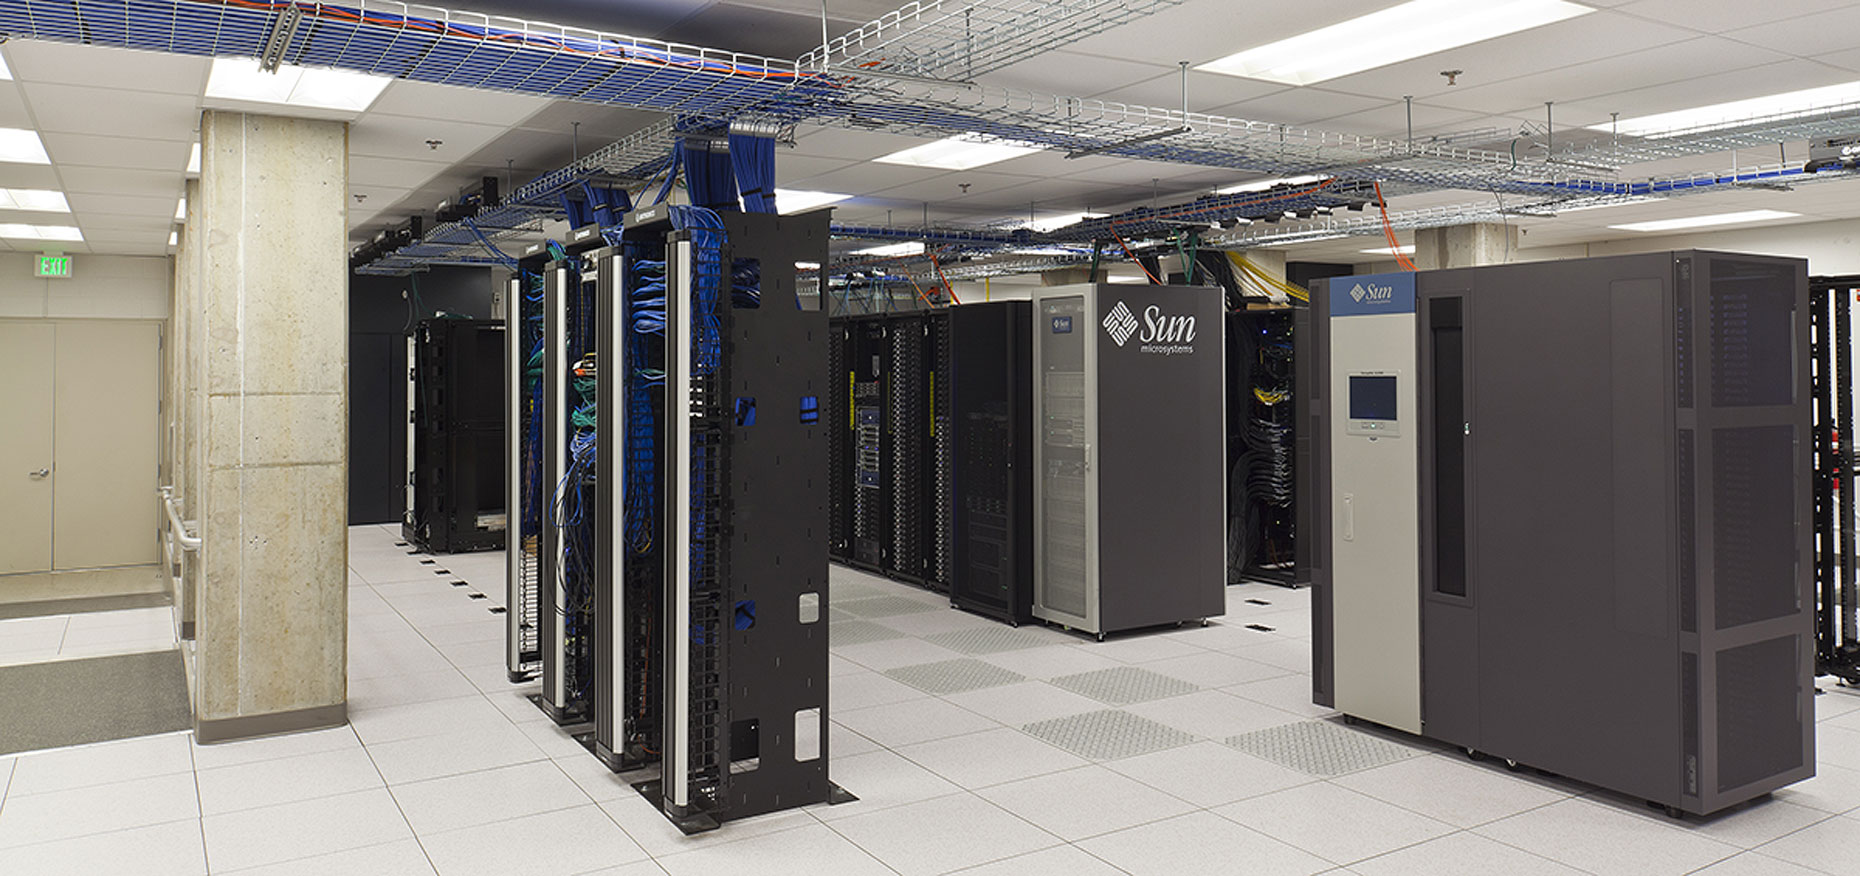 JHU Bloomberg Server room